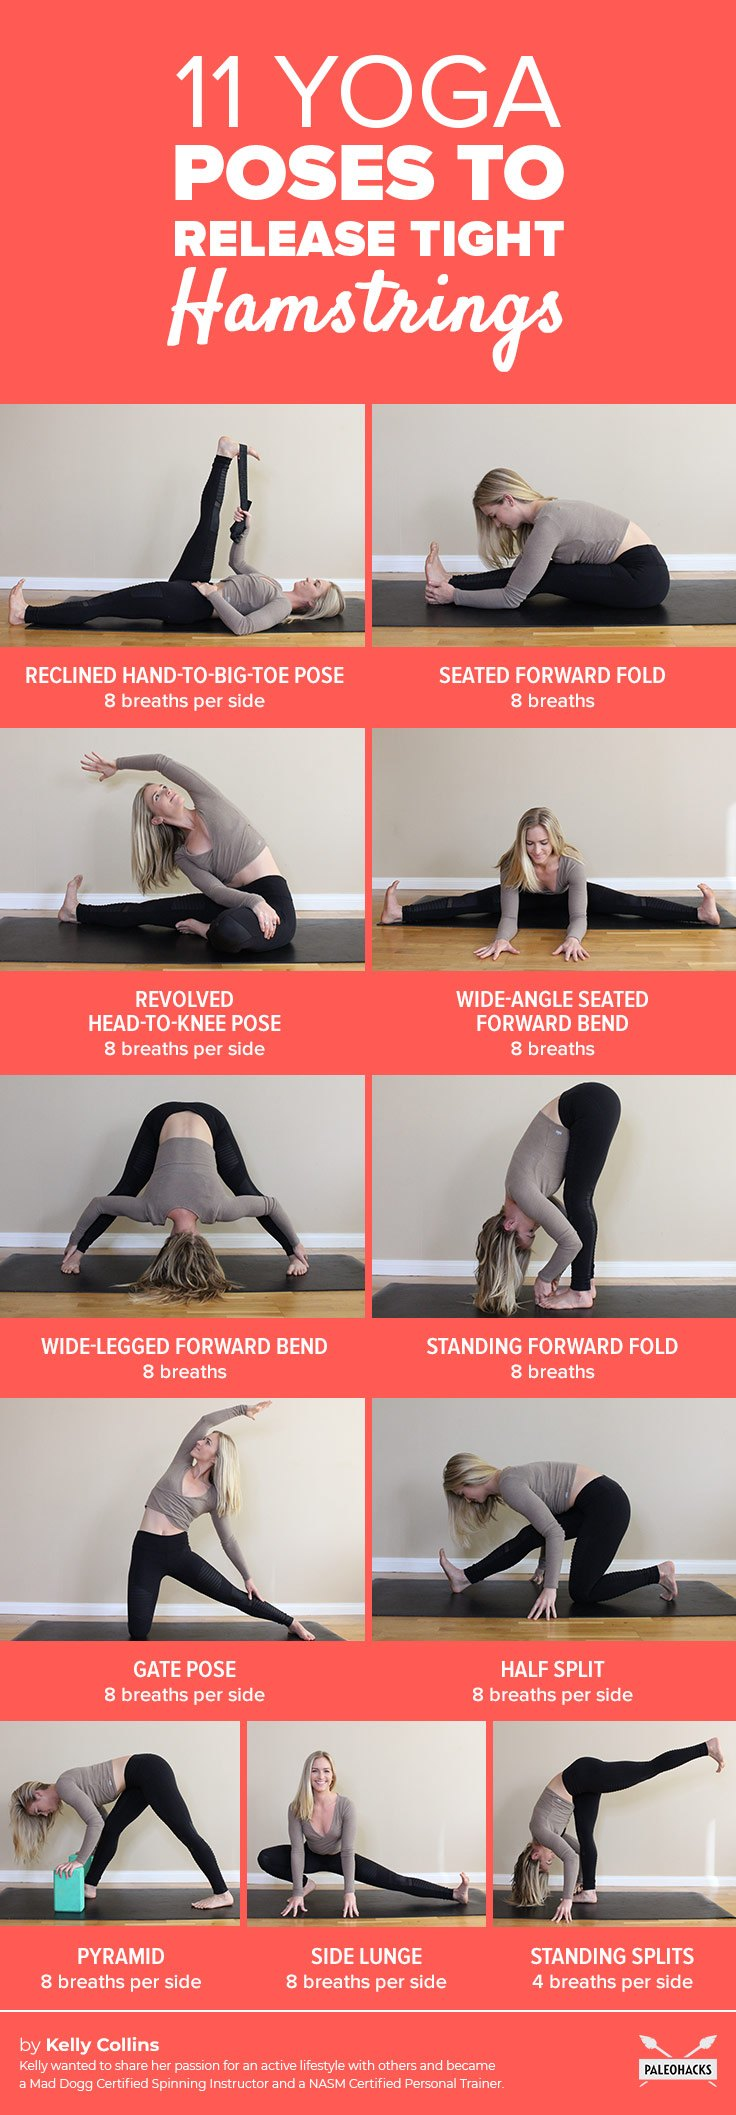 11-Yoga-Poses-to-Release-Tight-Hamstrings-infog-.jpg